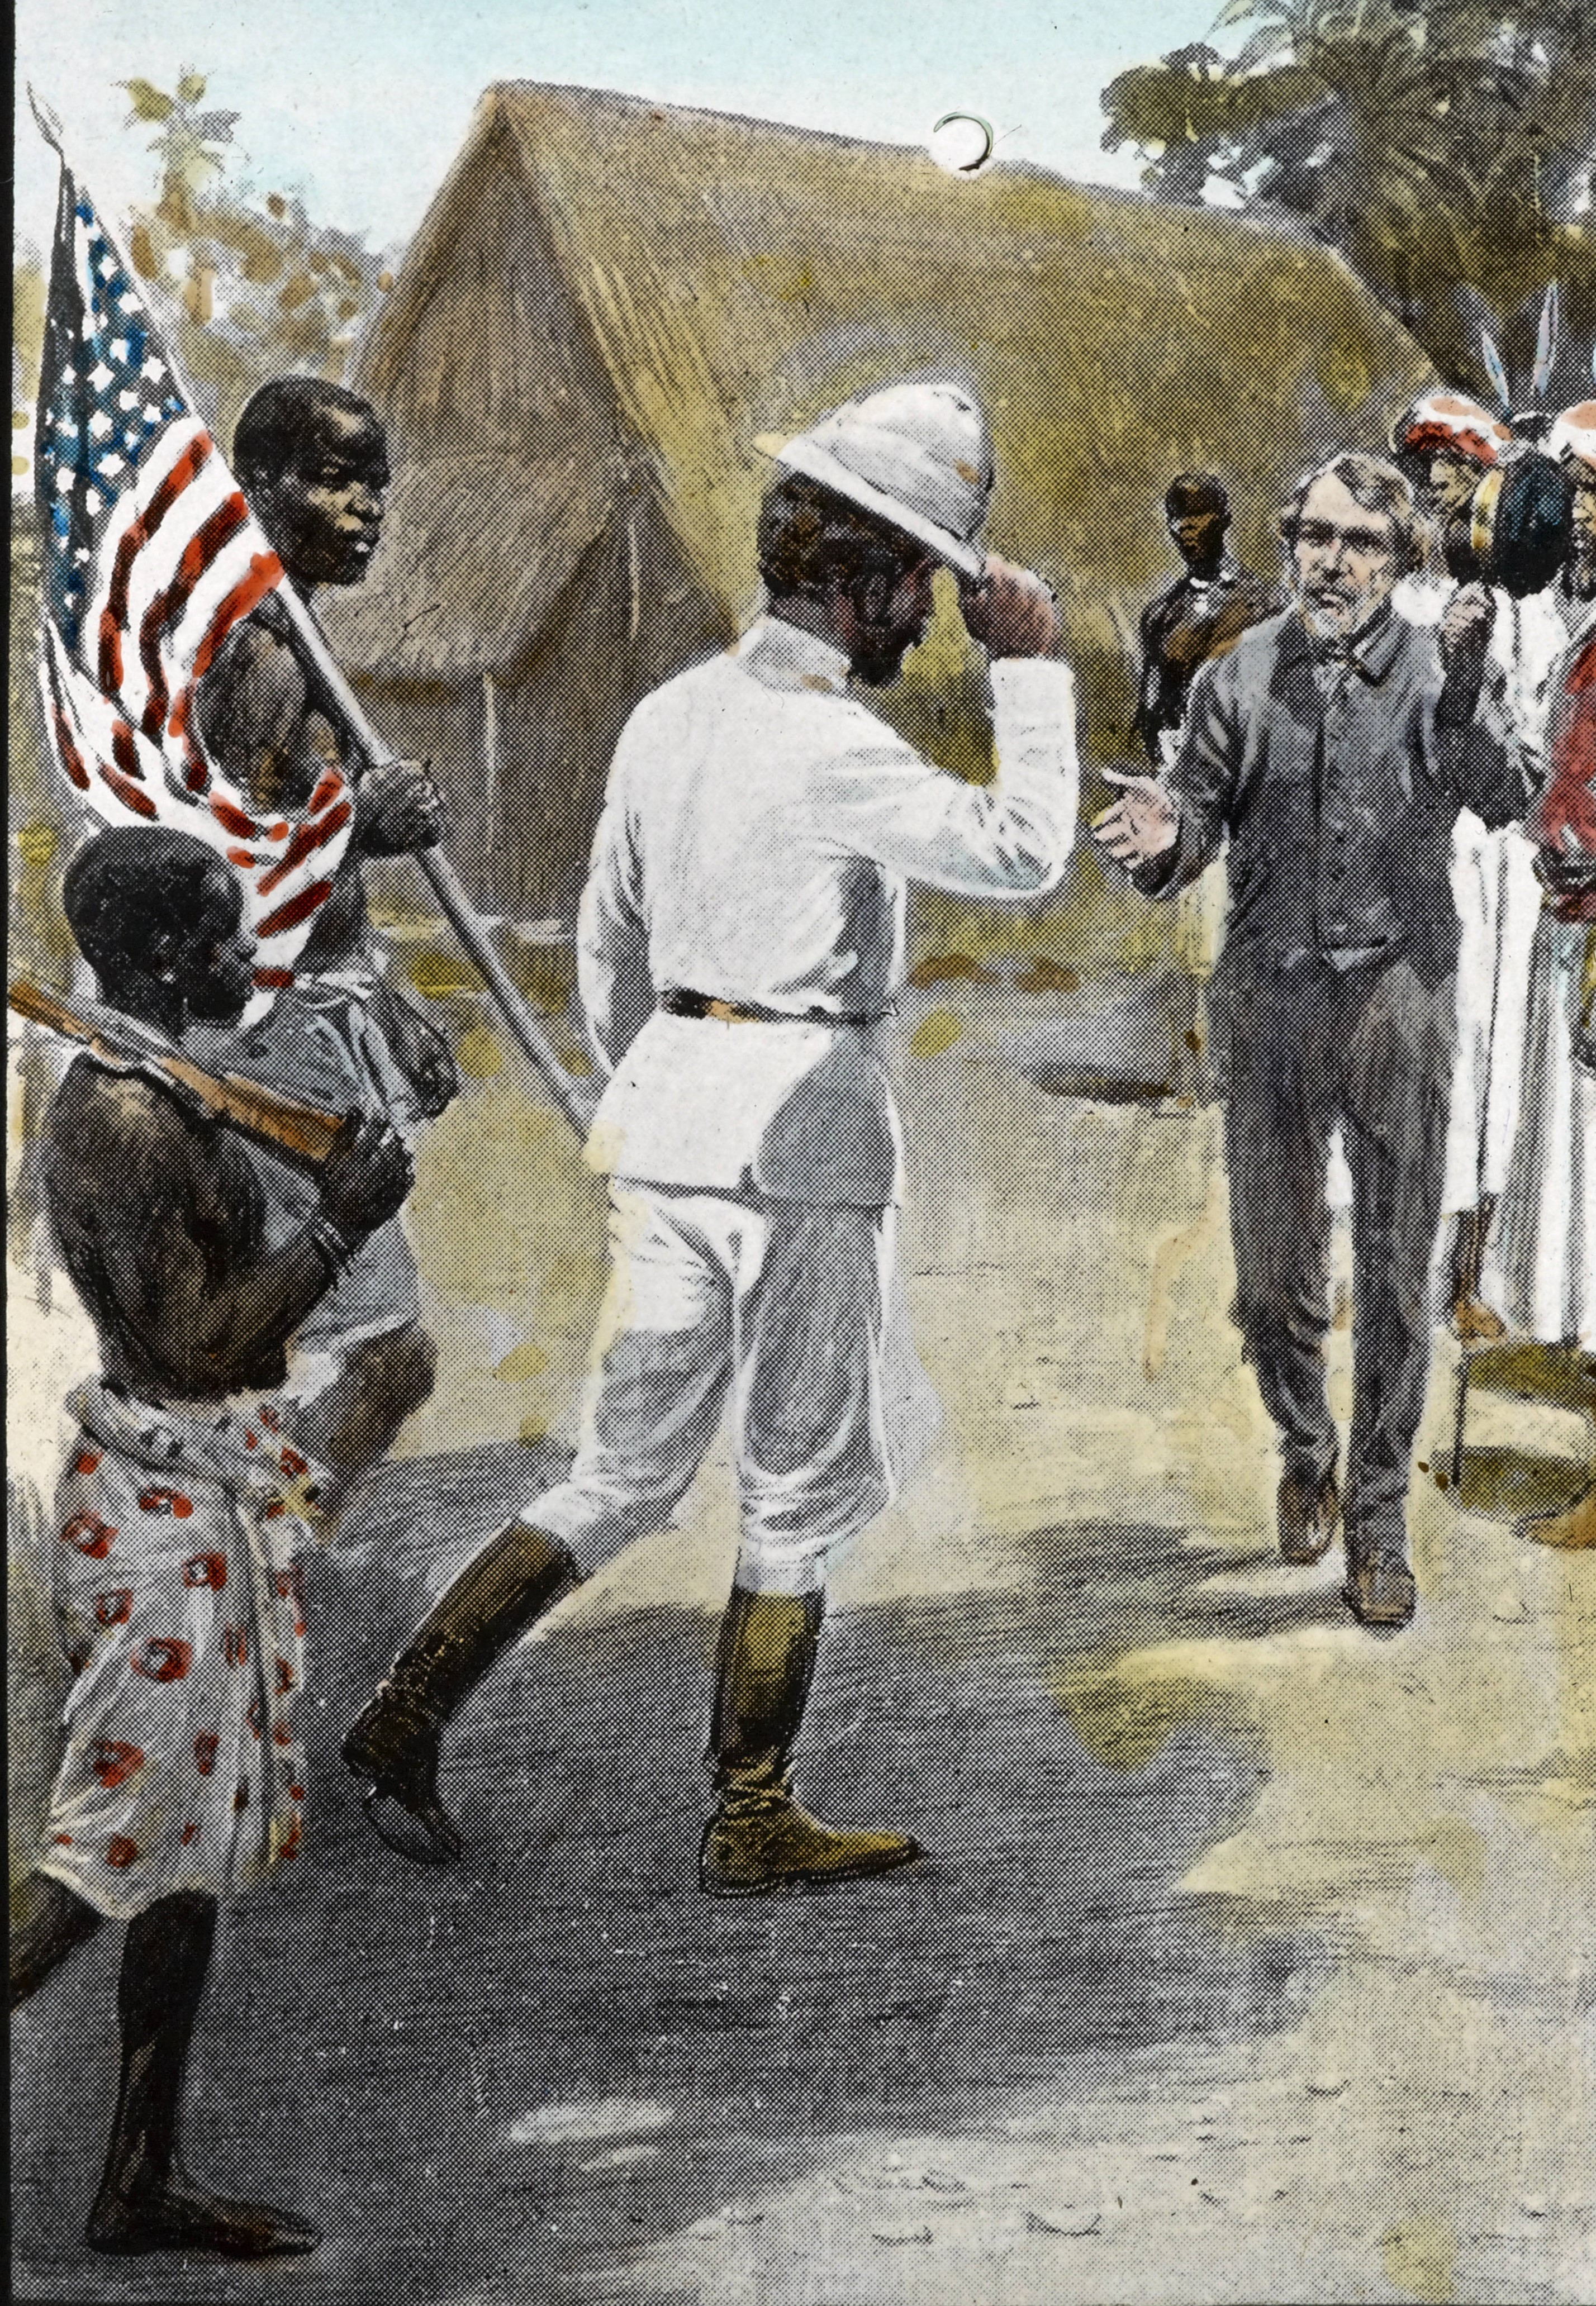 Meeting_of_David_Livingstone_(1813-1873)_and_Henry_Morton_Stanley_(1841-1904),_Africa,_ca._1875-ca._1940_(imp-cswc-GB-237-CSWC47-LS16-050)